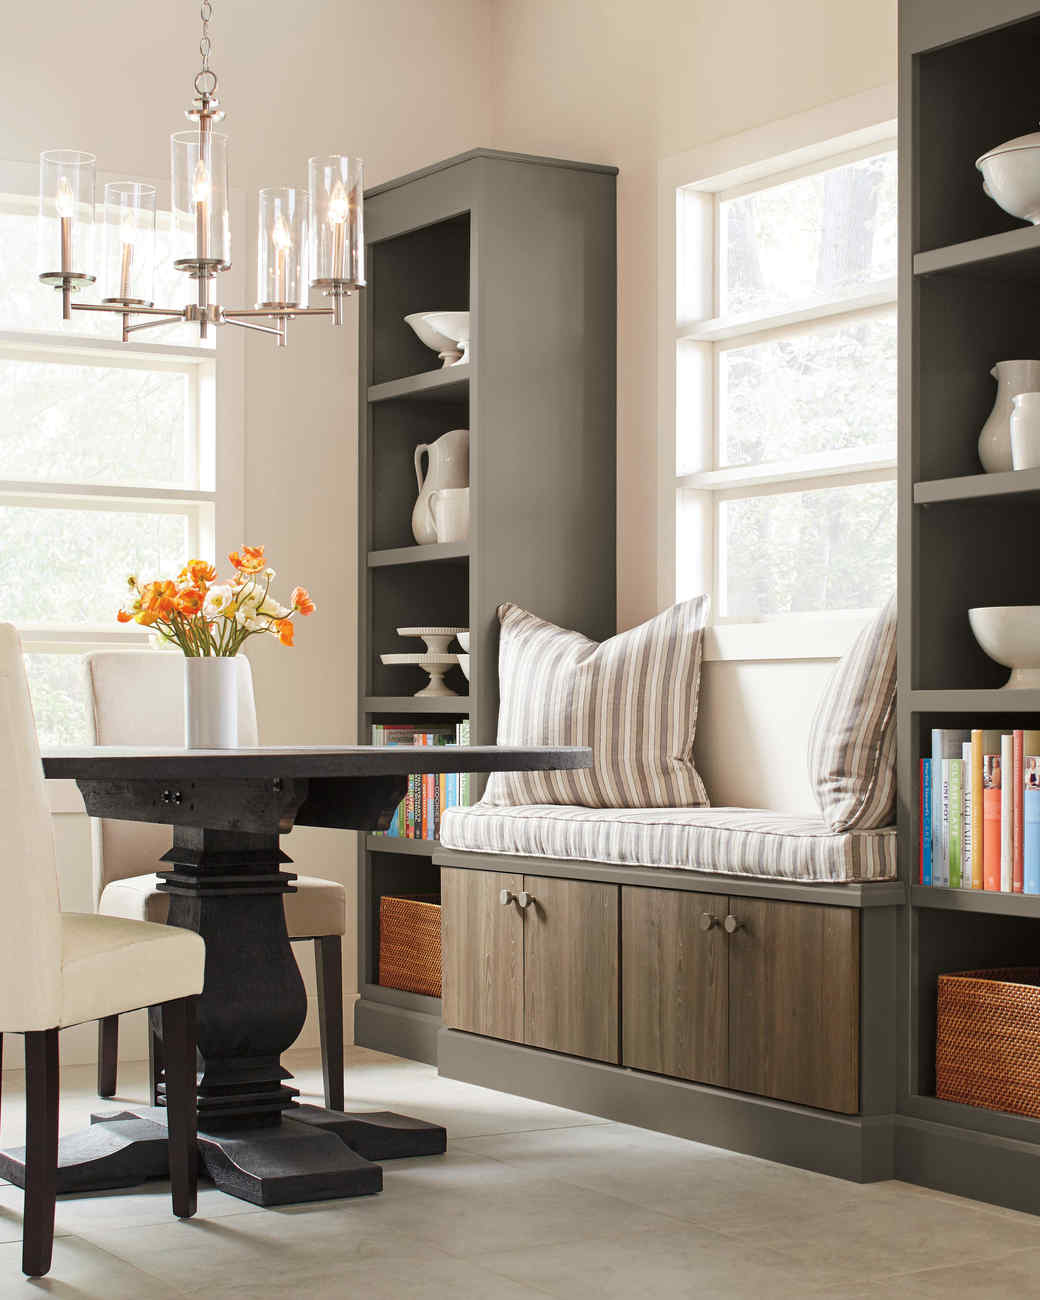 Small Kitchen Home Depot: Kitchen Remodel Tips To Live By: The Art Of Functional